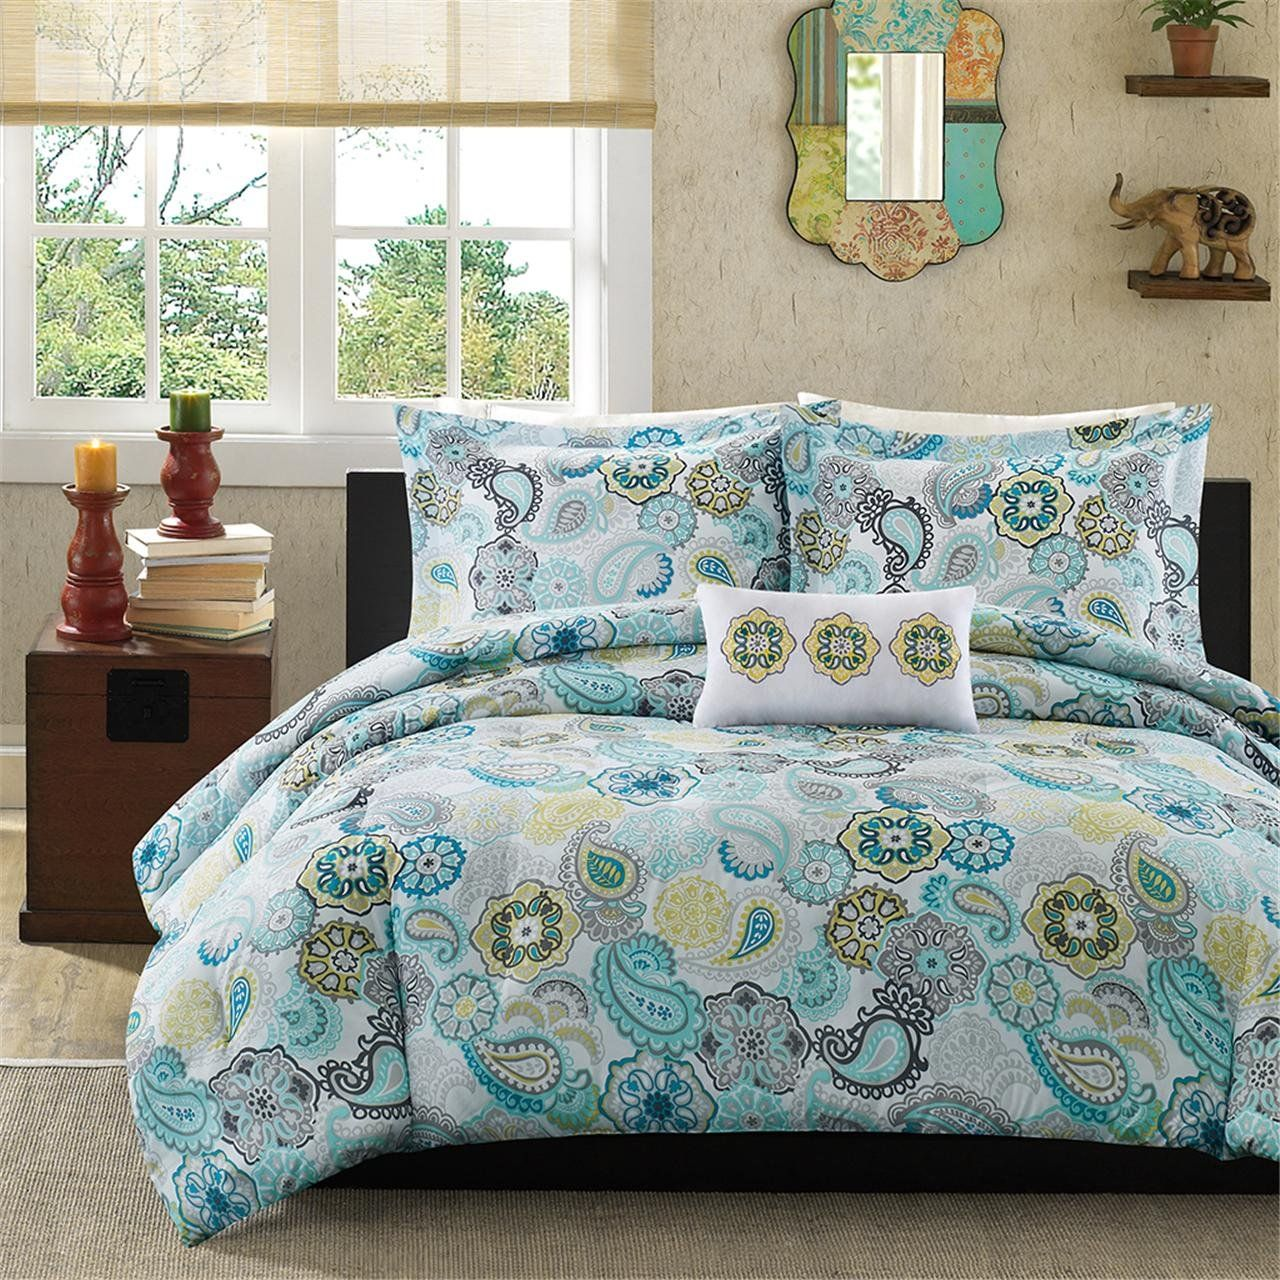 A Welcome Comfort From Teal And Gray Bedding